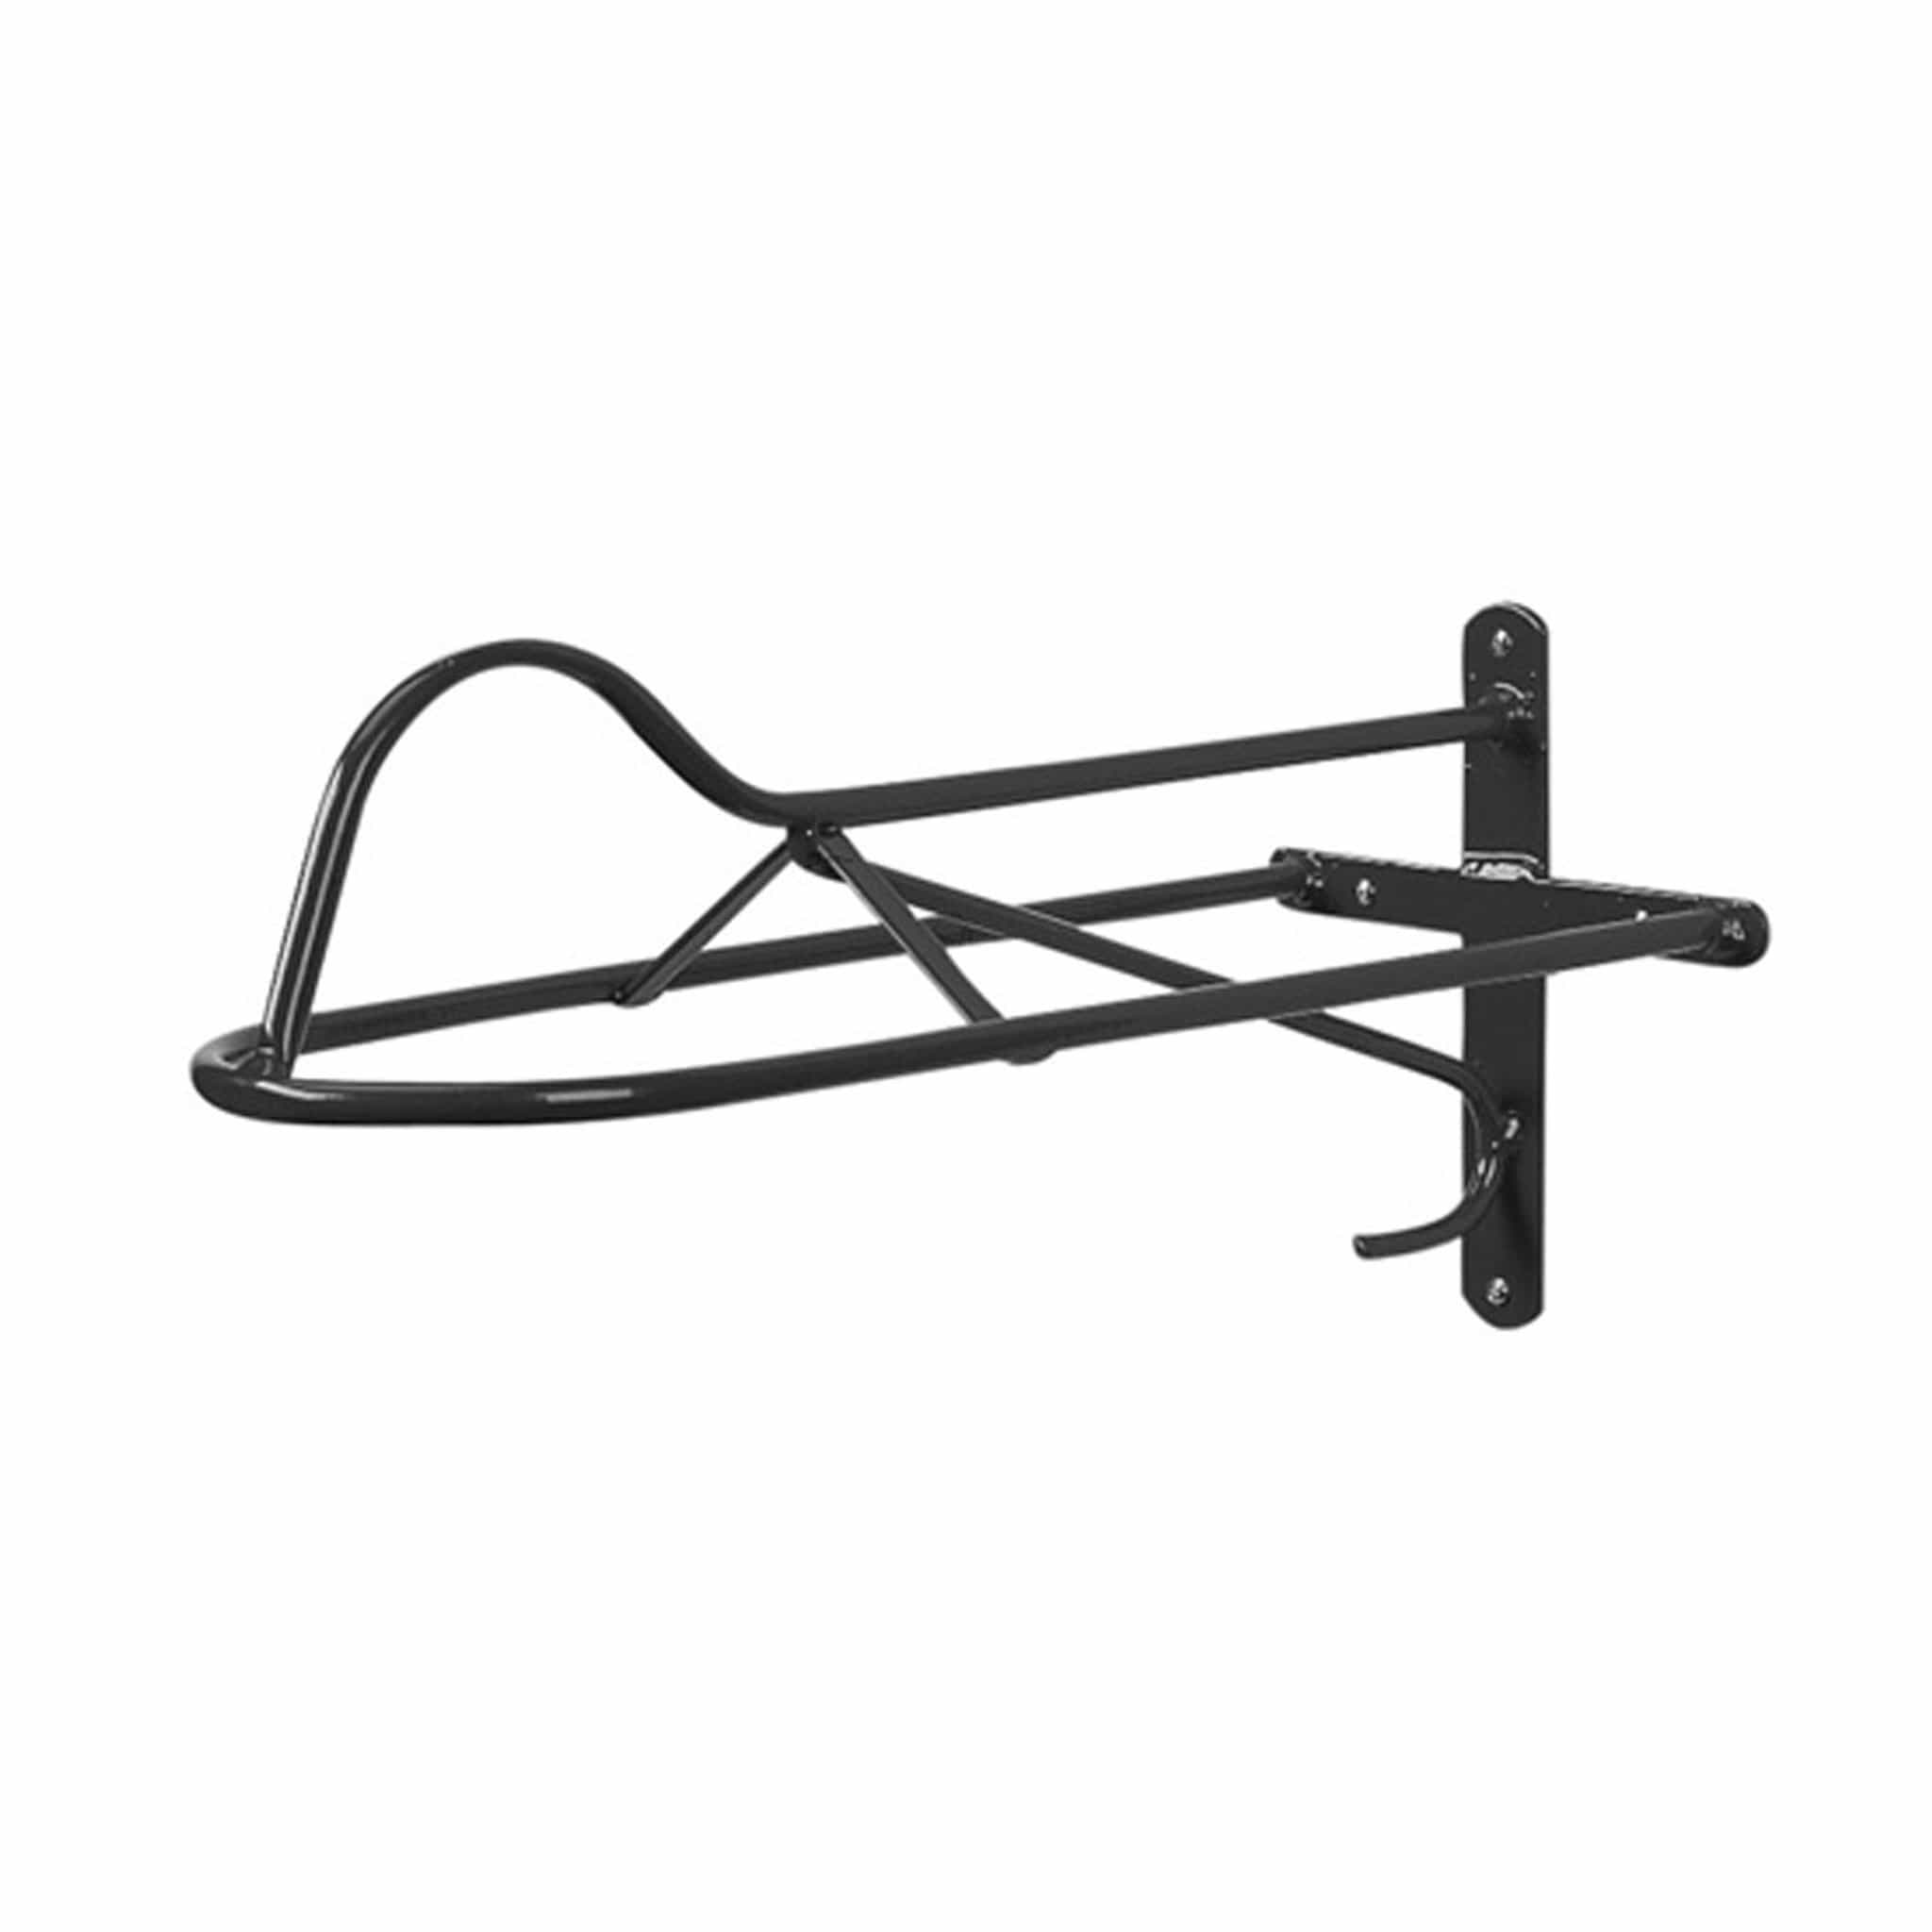 Stubbs Forward Seat Saddle Rack in Black 7908